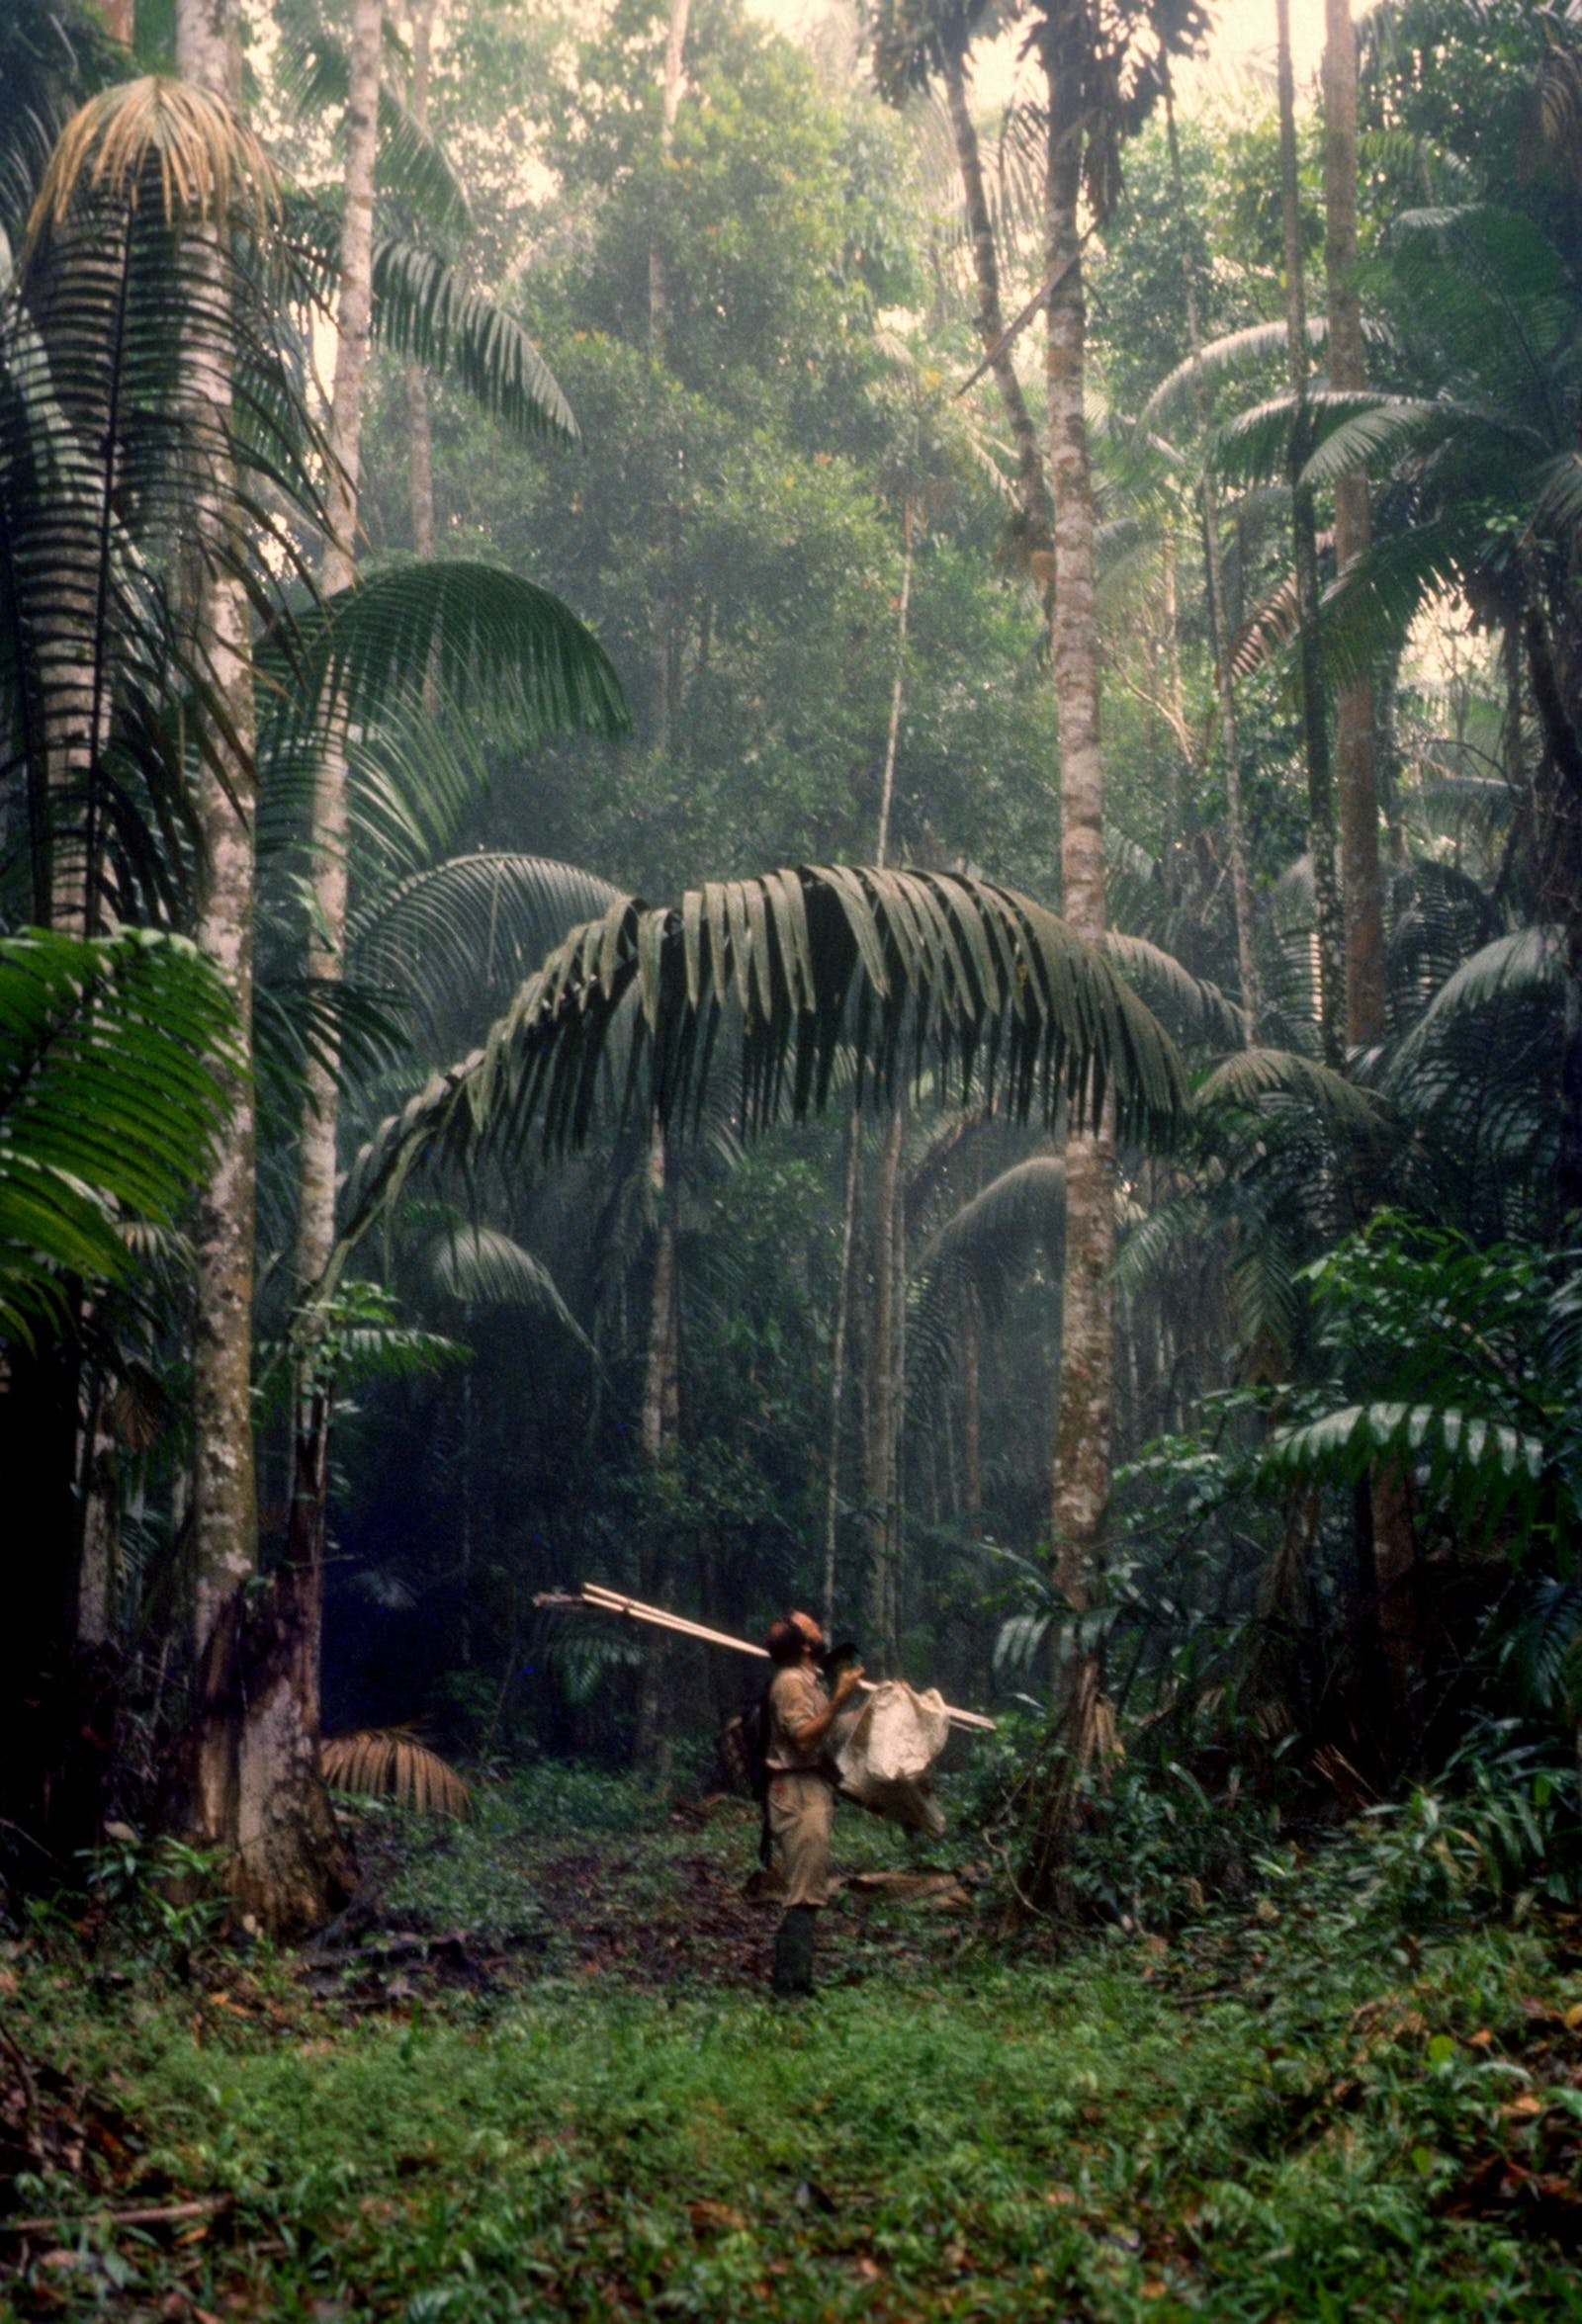 Eastern Panamanian Montane Forests